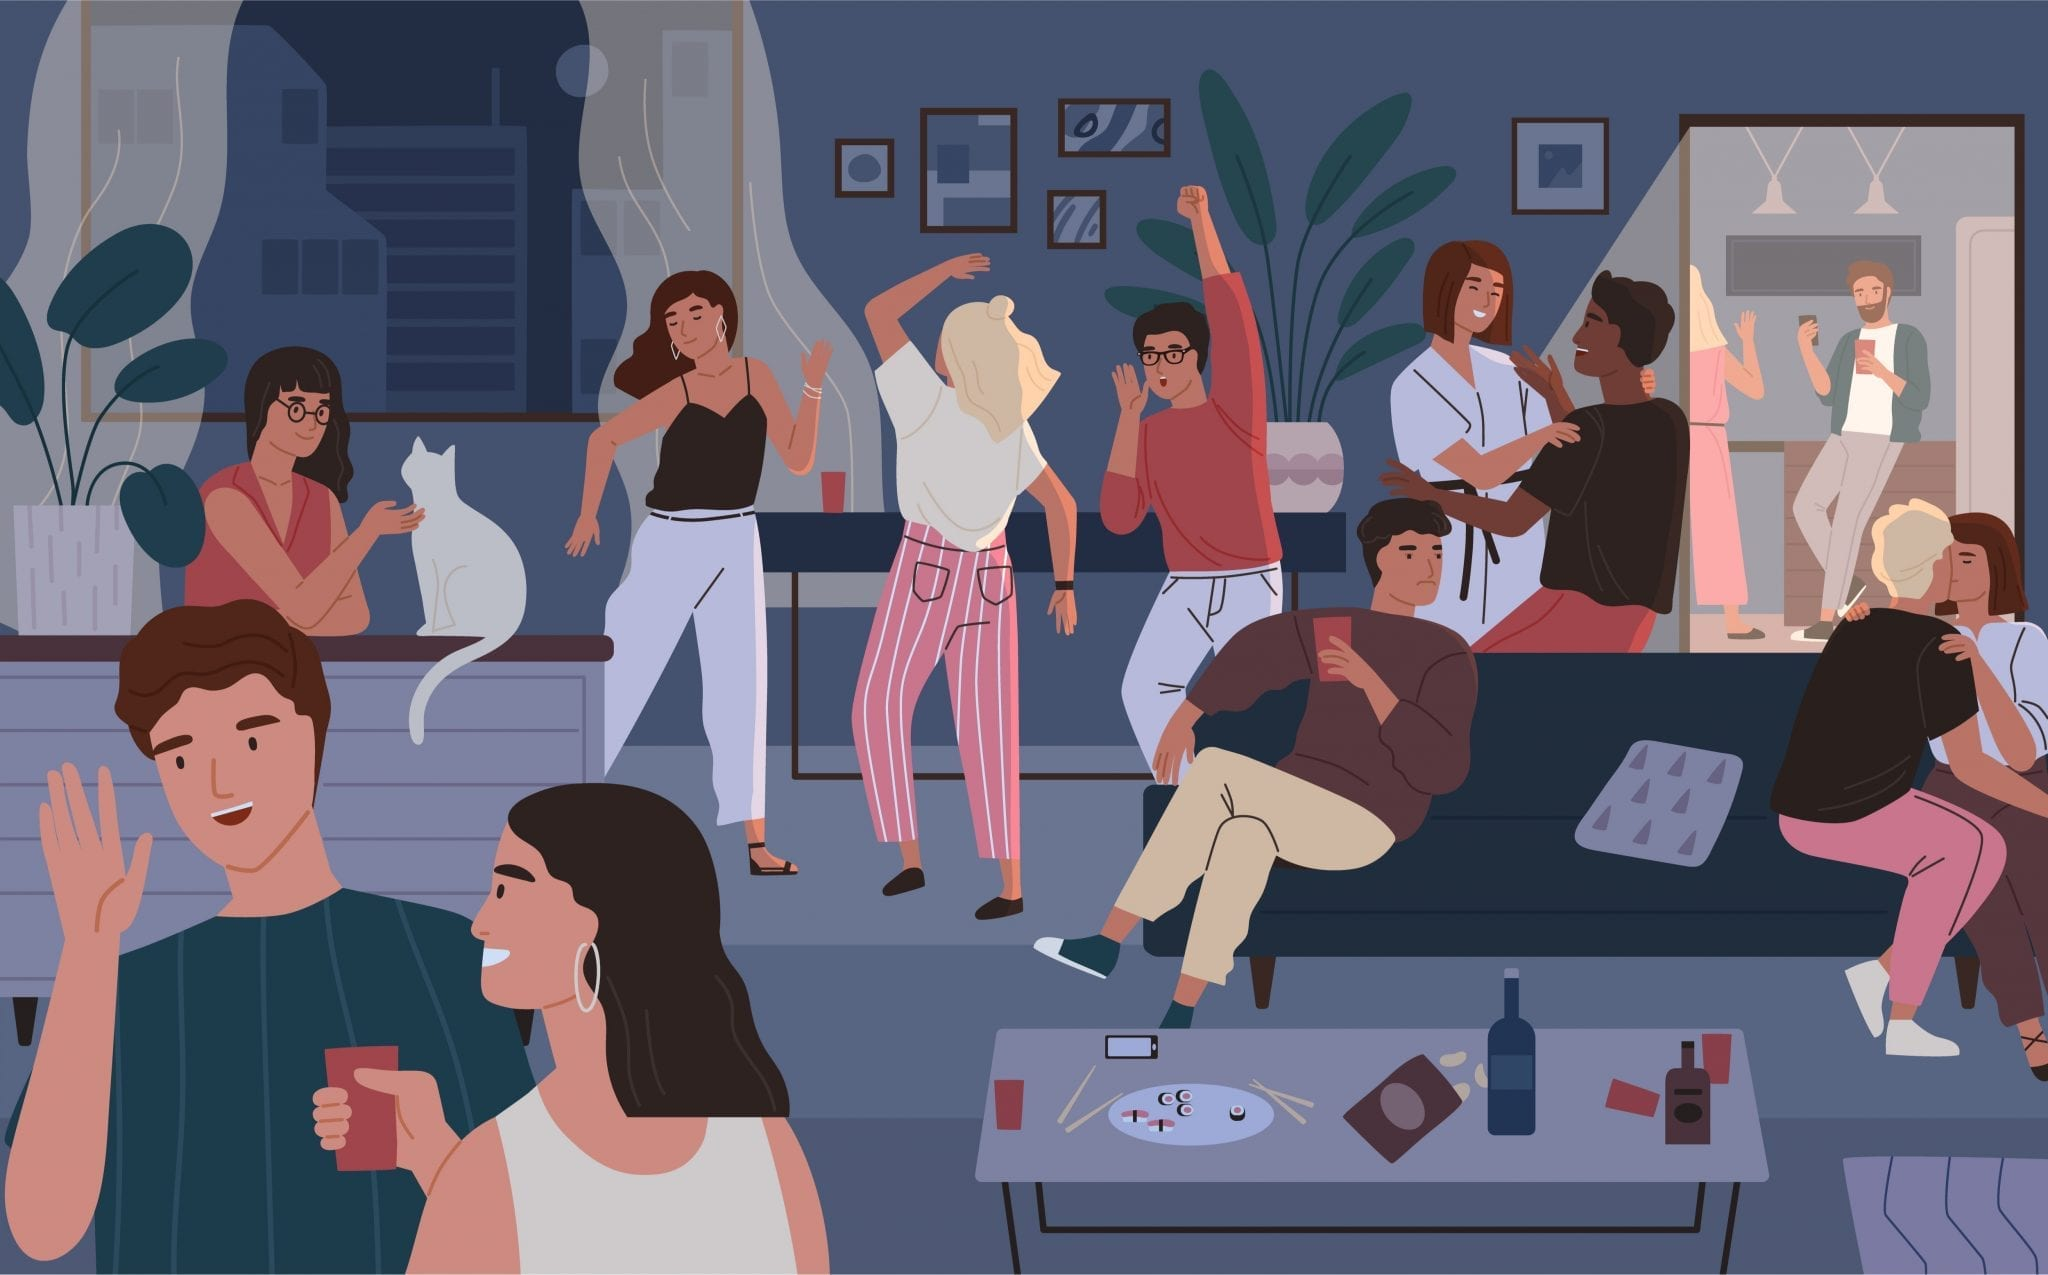 Happy Friends at Home Party. Apartment or Living Room Full of People Having Fun, Dancing and Talking. Young Cute Men and Women Spending Time Together at Night